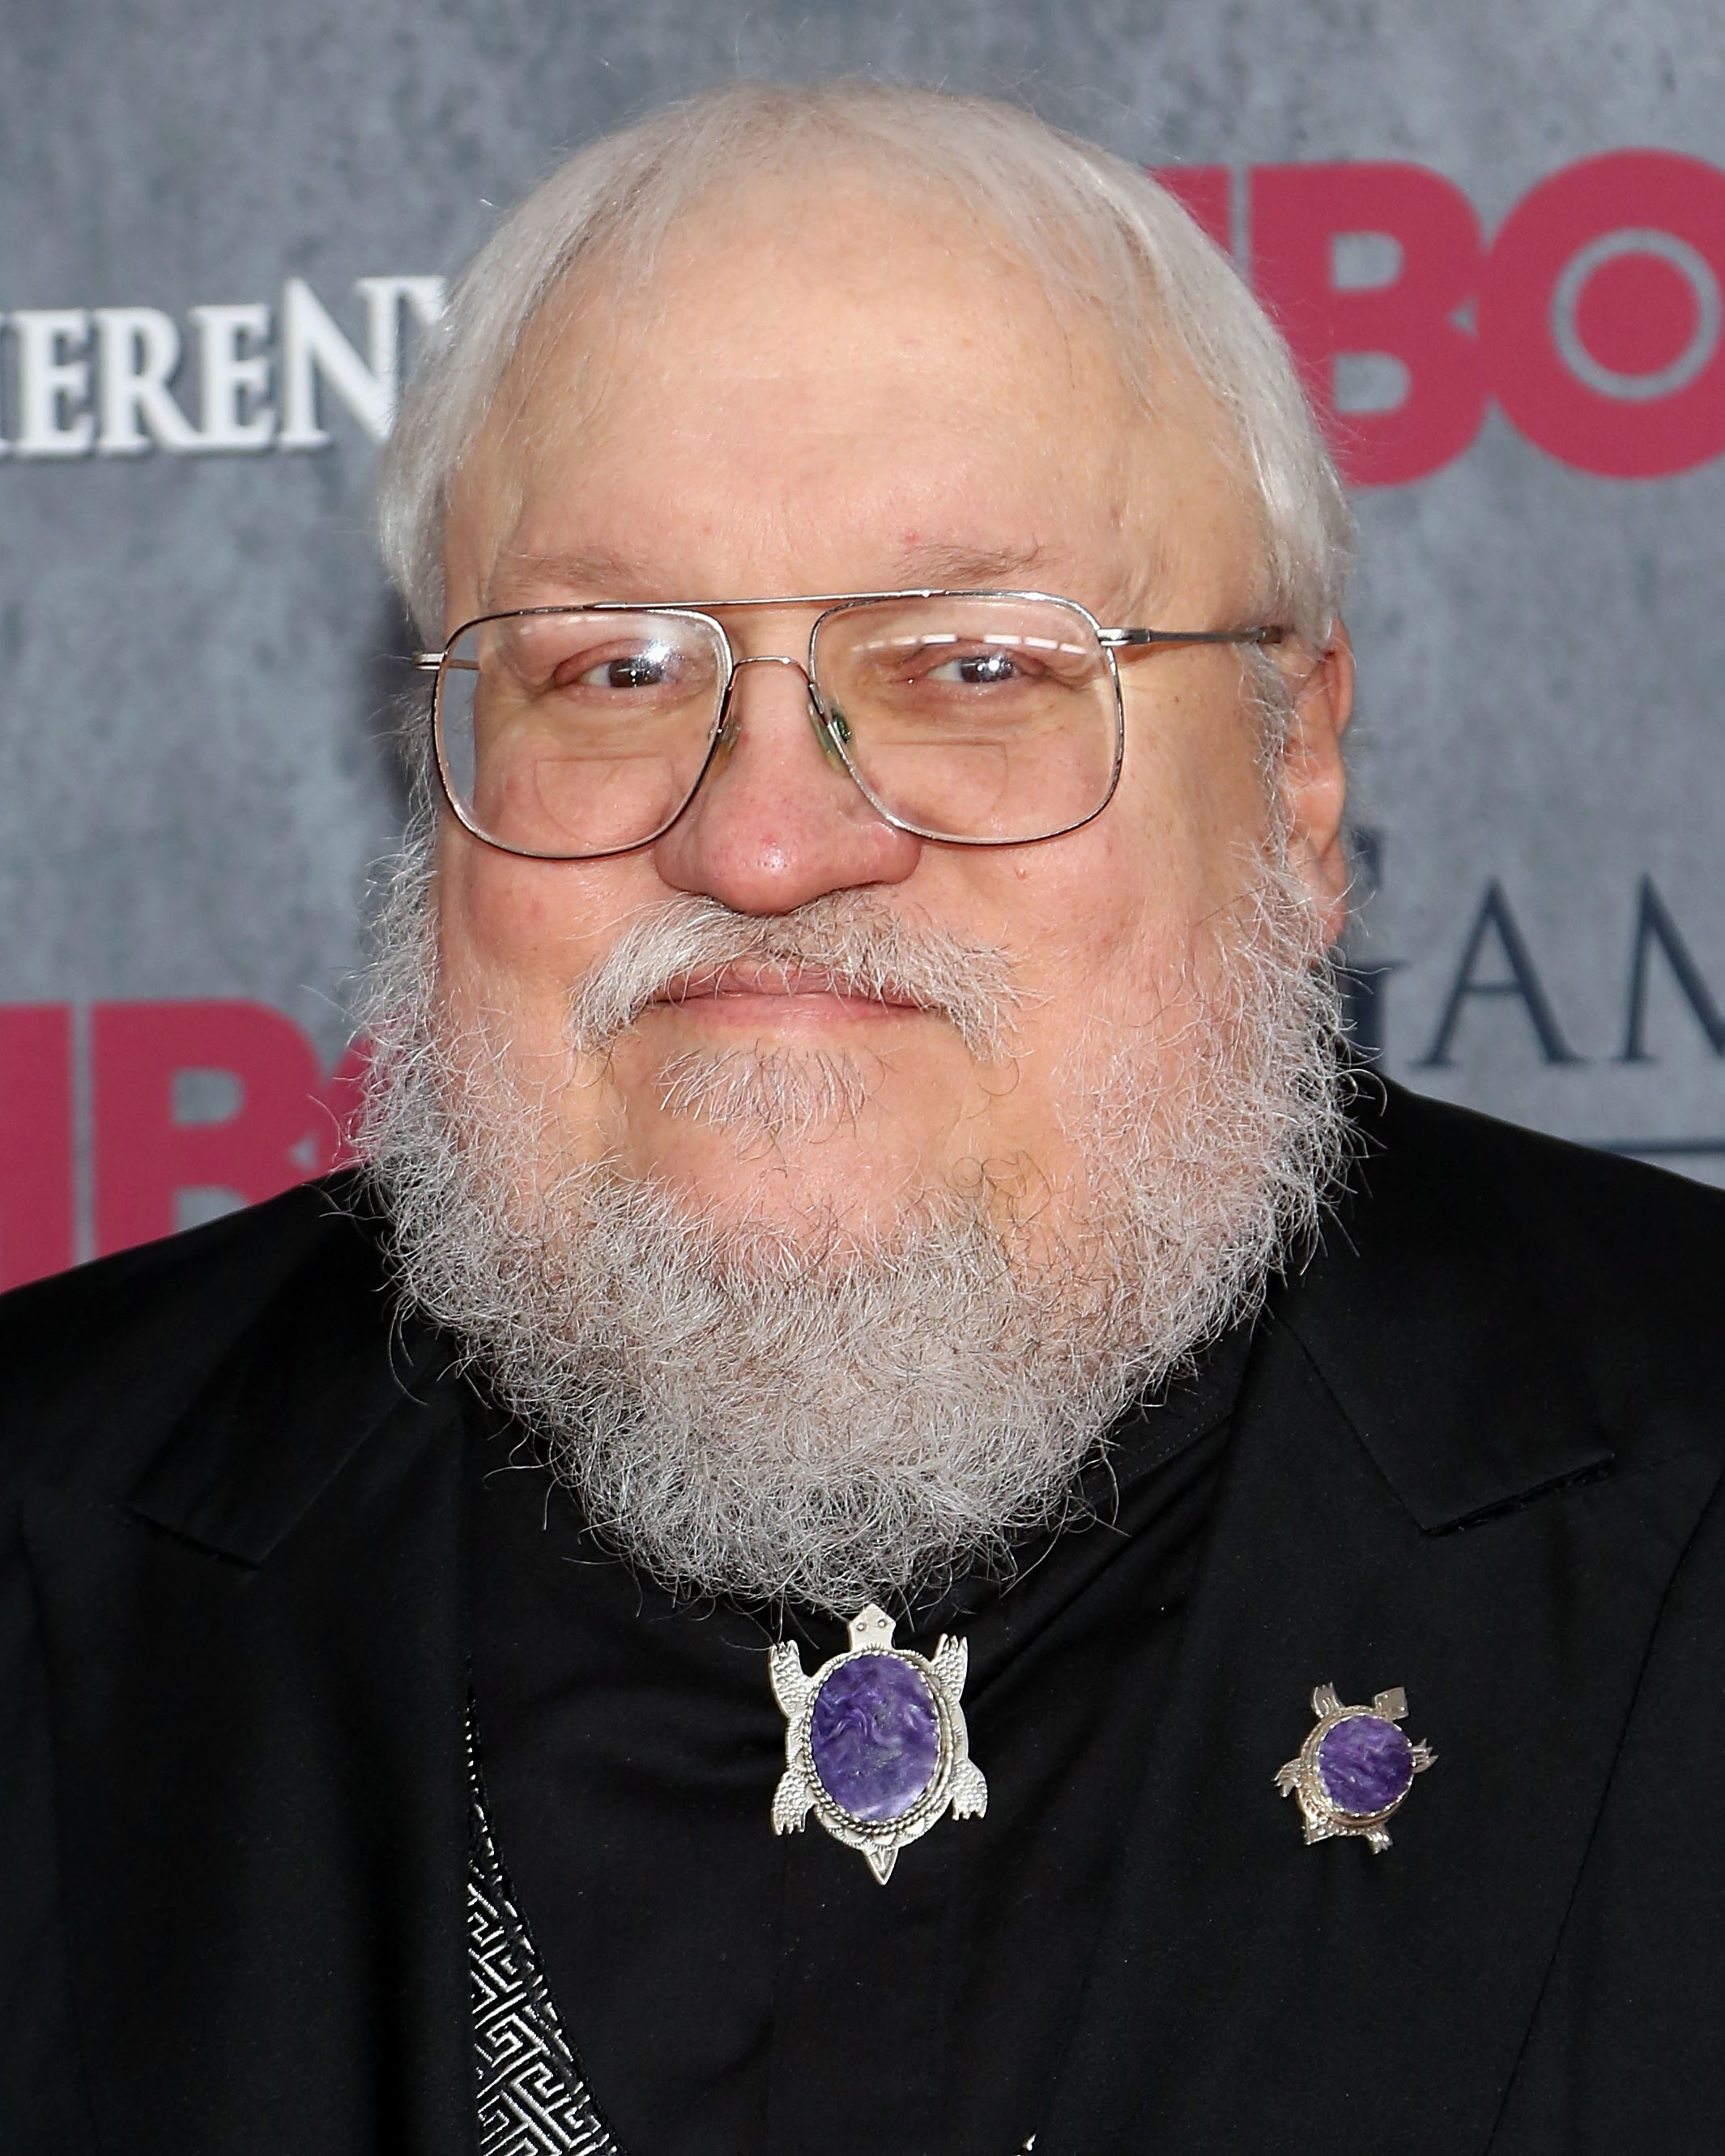 Series creator George R.R. Martin attends the  Game Of Thrones  Season 4 premiere